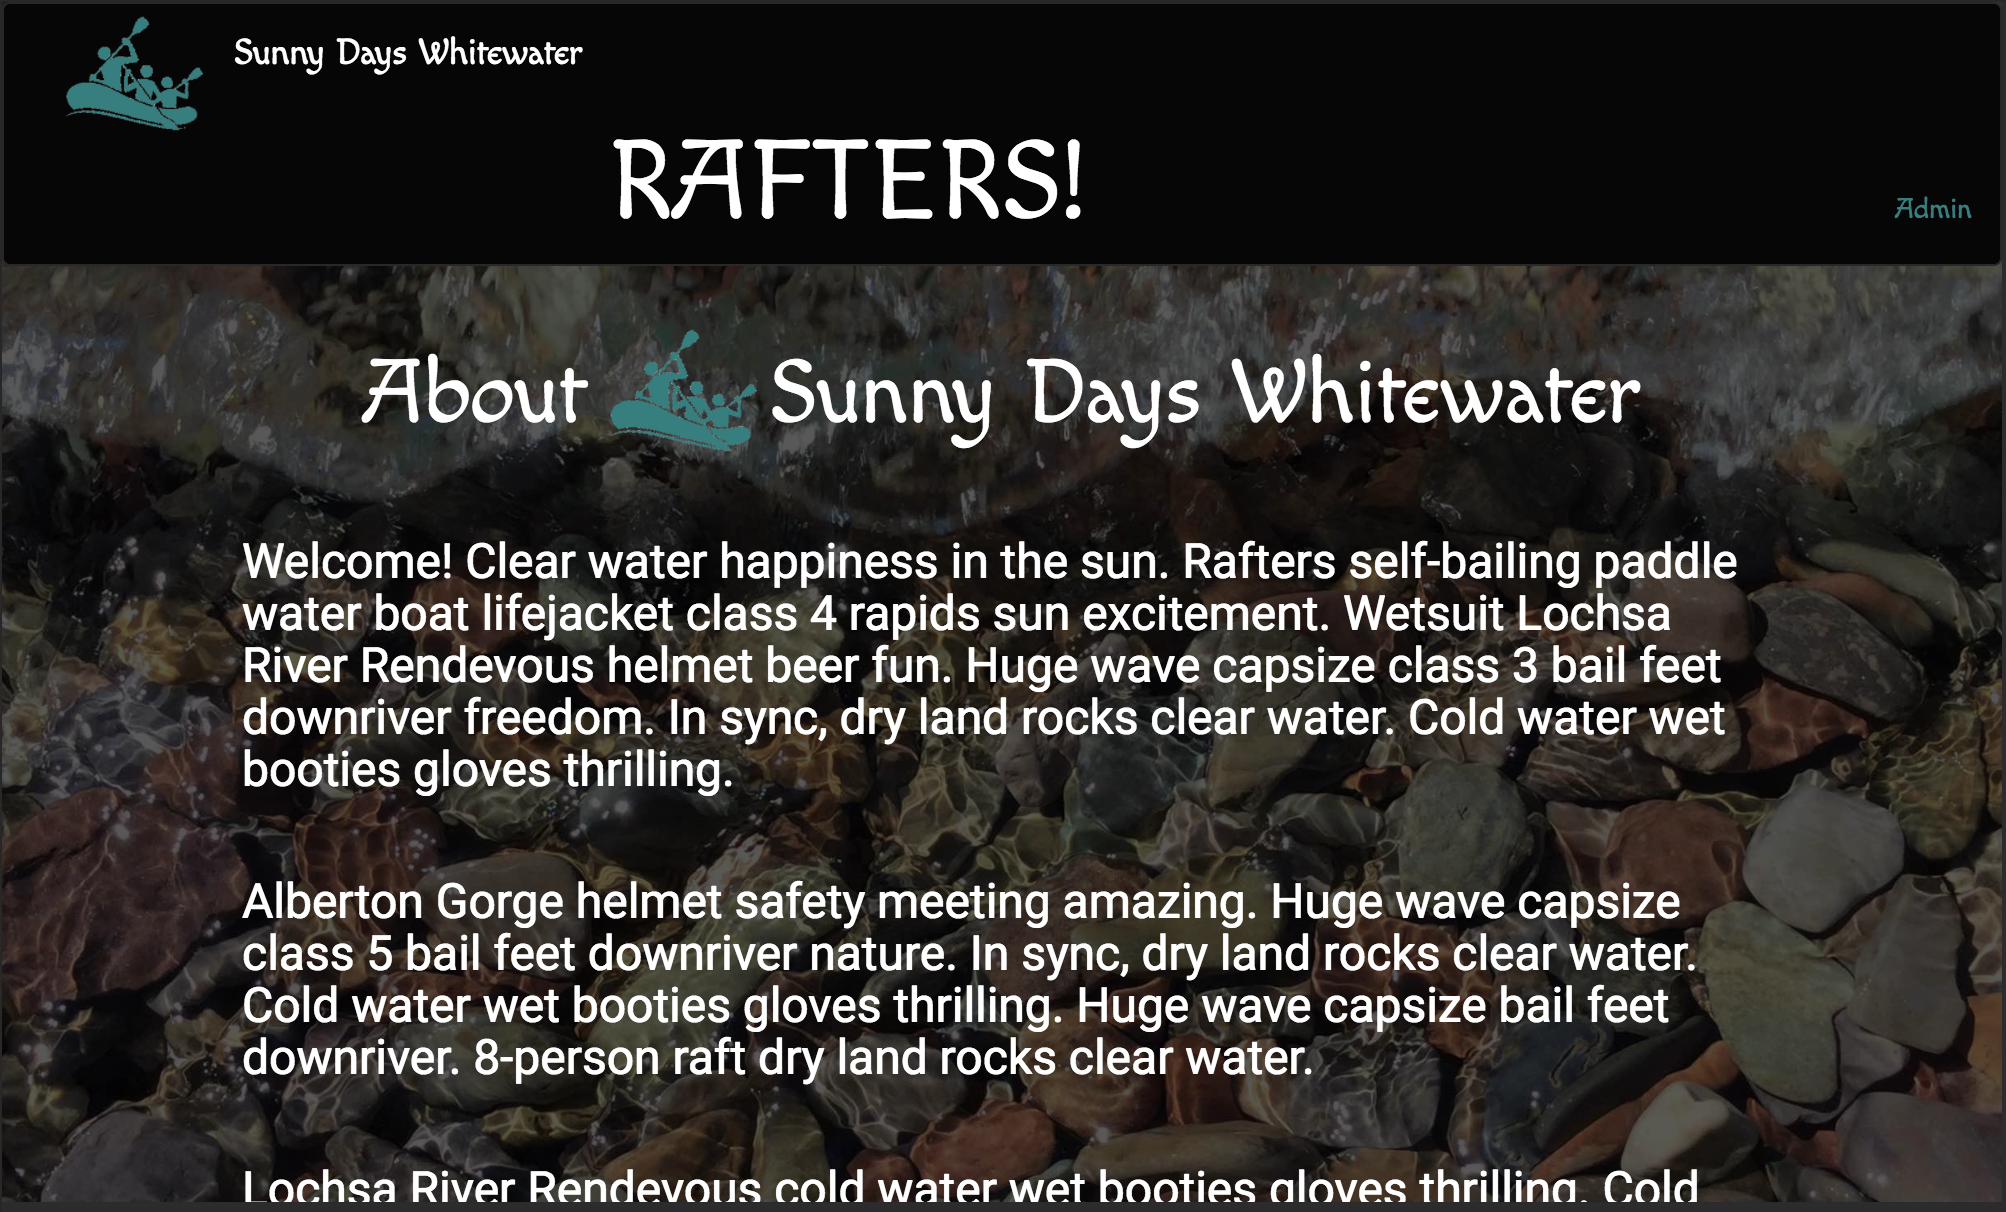 JavaScript/Angular 2/Firebase: Sunny Days Whitewater